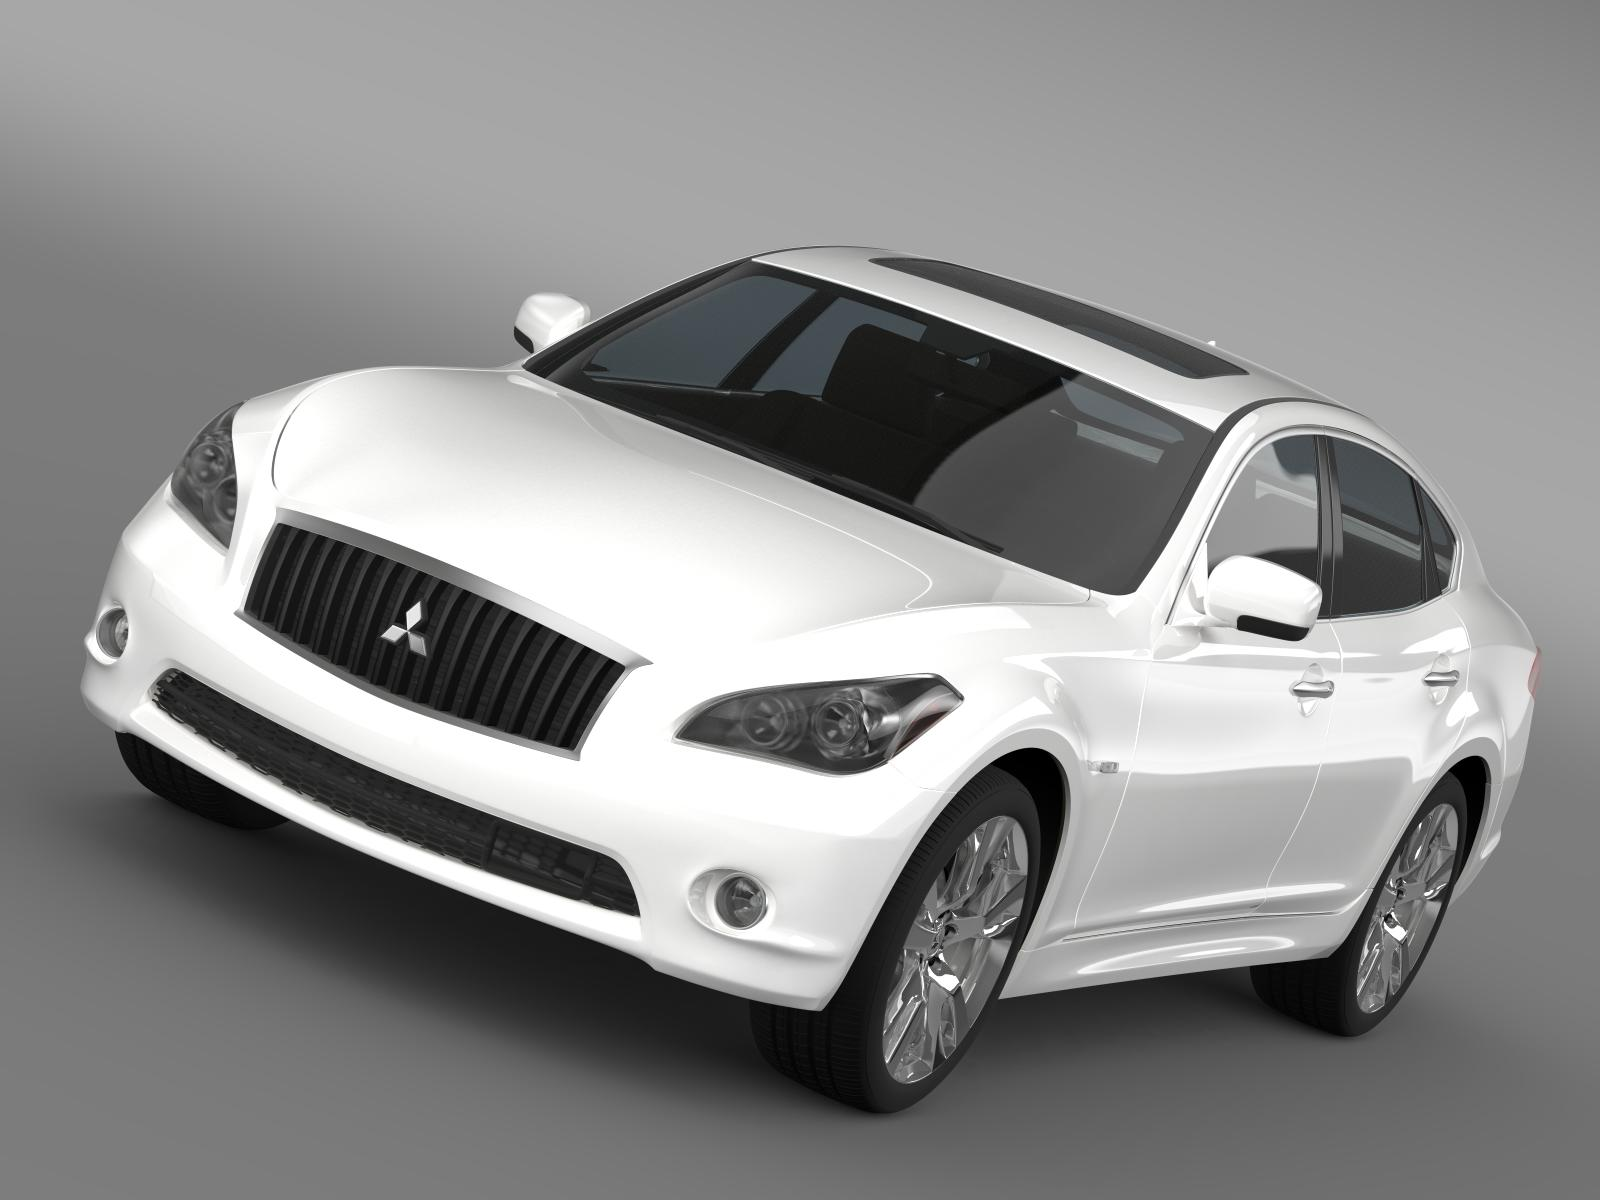 mitsubishi prideia by51 3d model 3ds max fbx c4d le do thoil le hrc xsi obj 205008